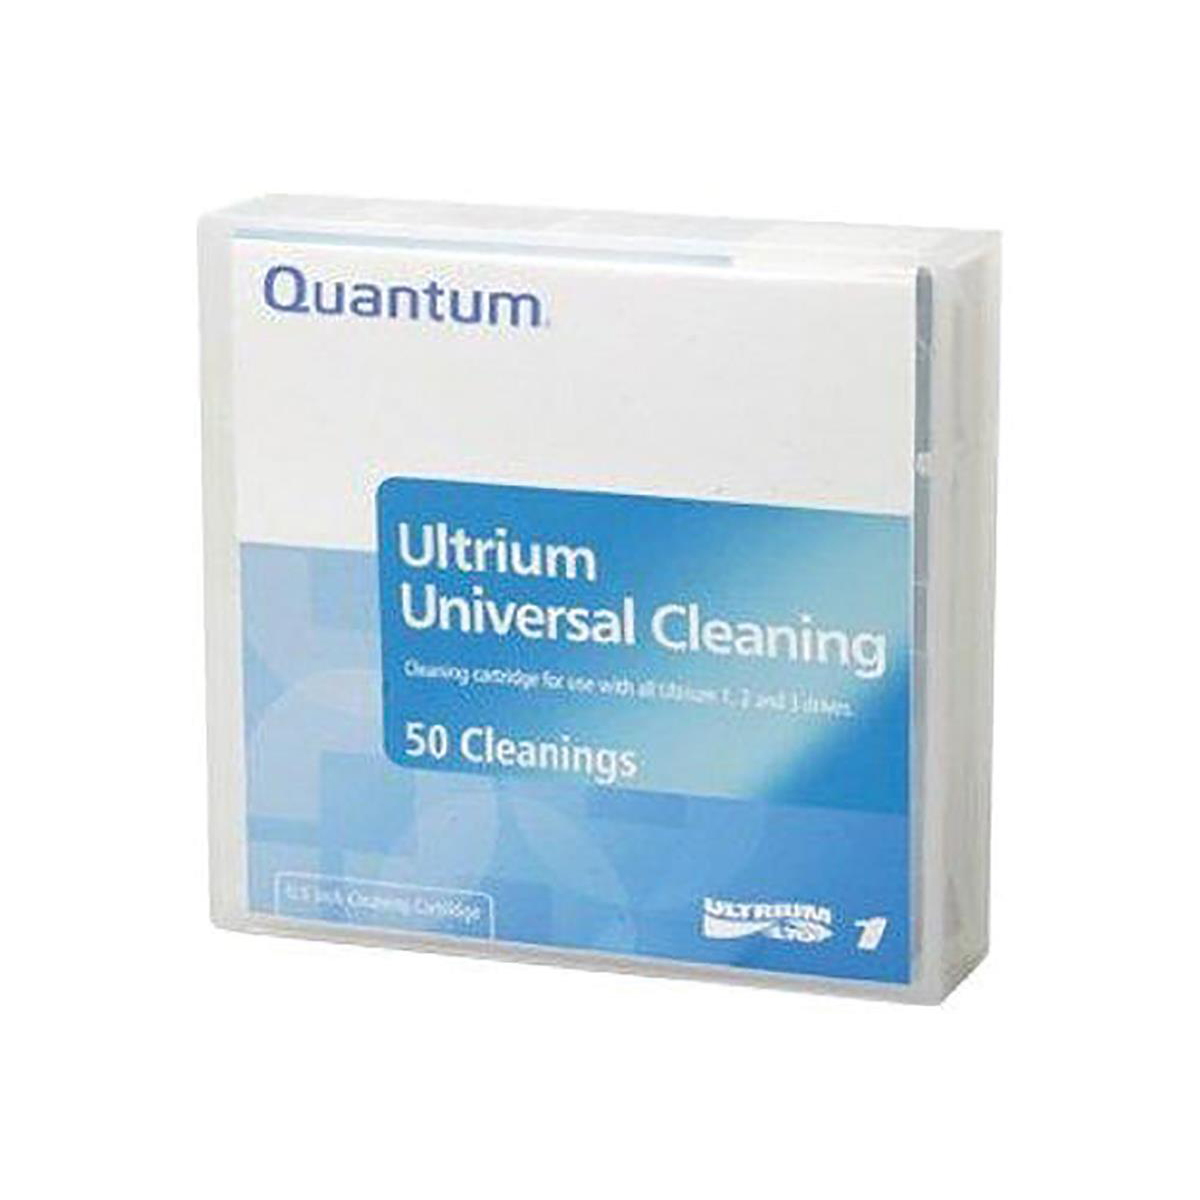 Quantum LTO Cleaning Cartridge 50 Cleans Ref MR-LUCQN-01S